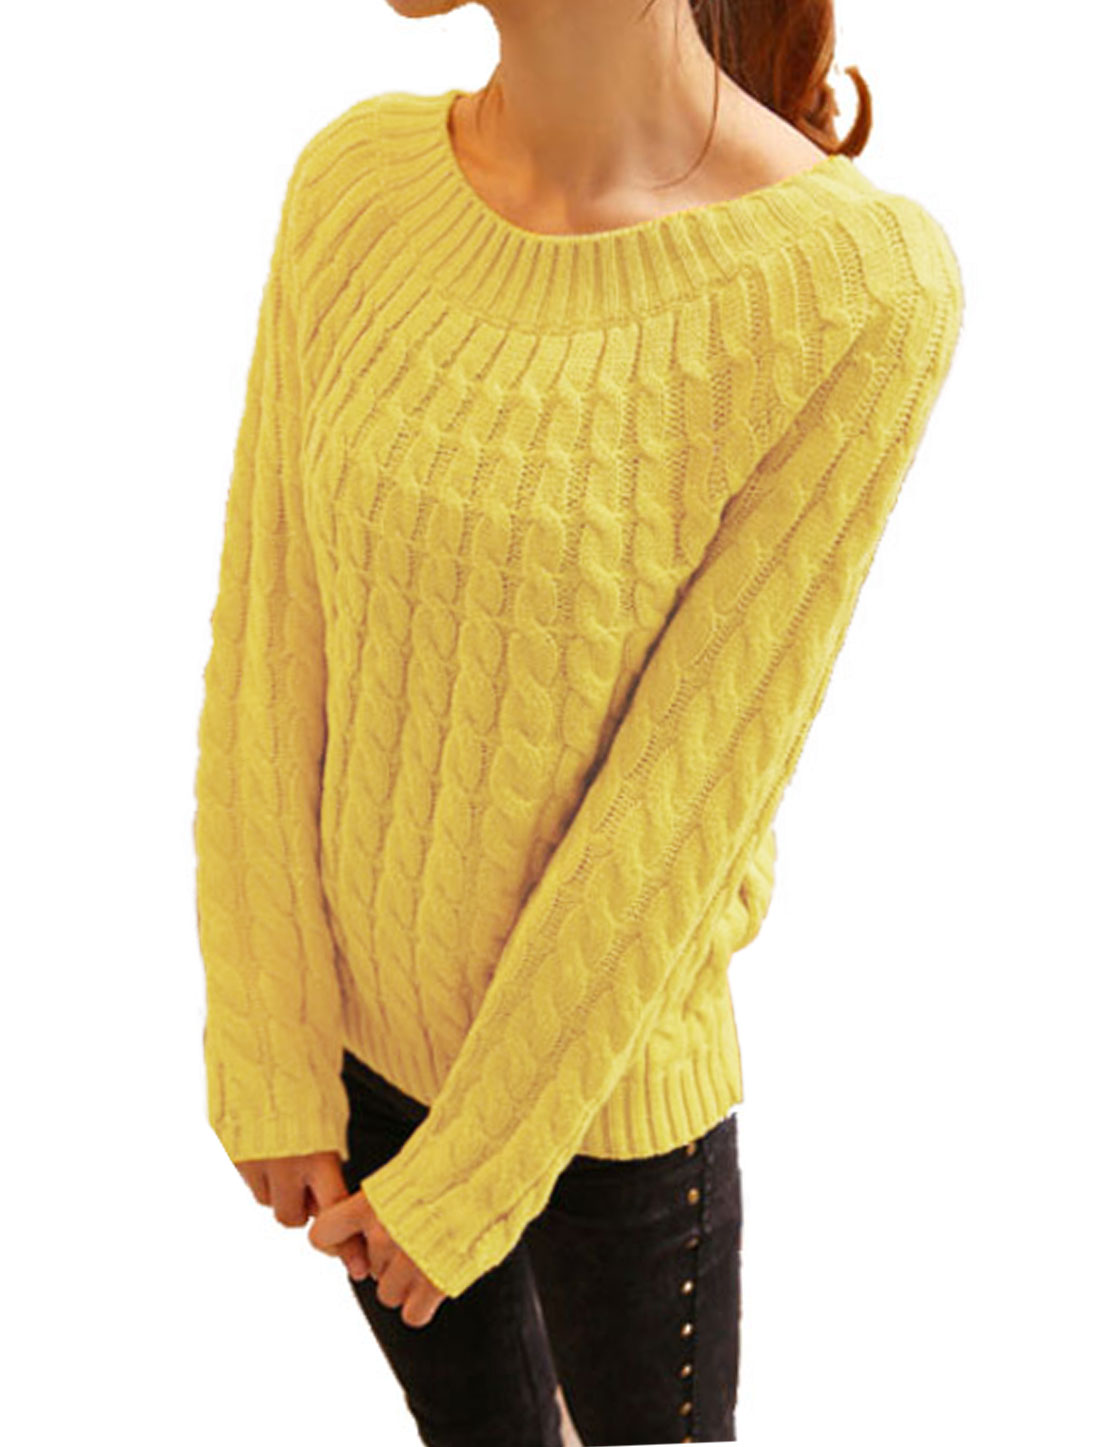 Ladies Long Raglan Sleeve Cable Rib Knit Design Casual Sweater Yellow S